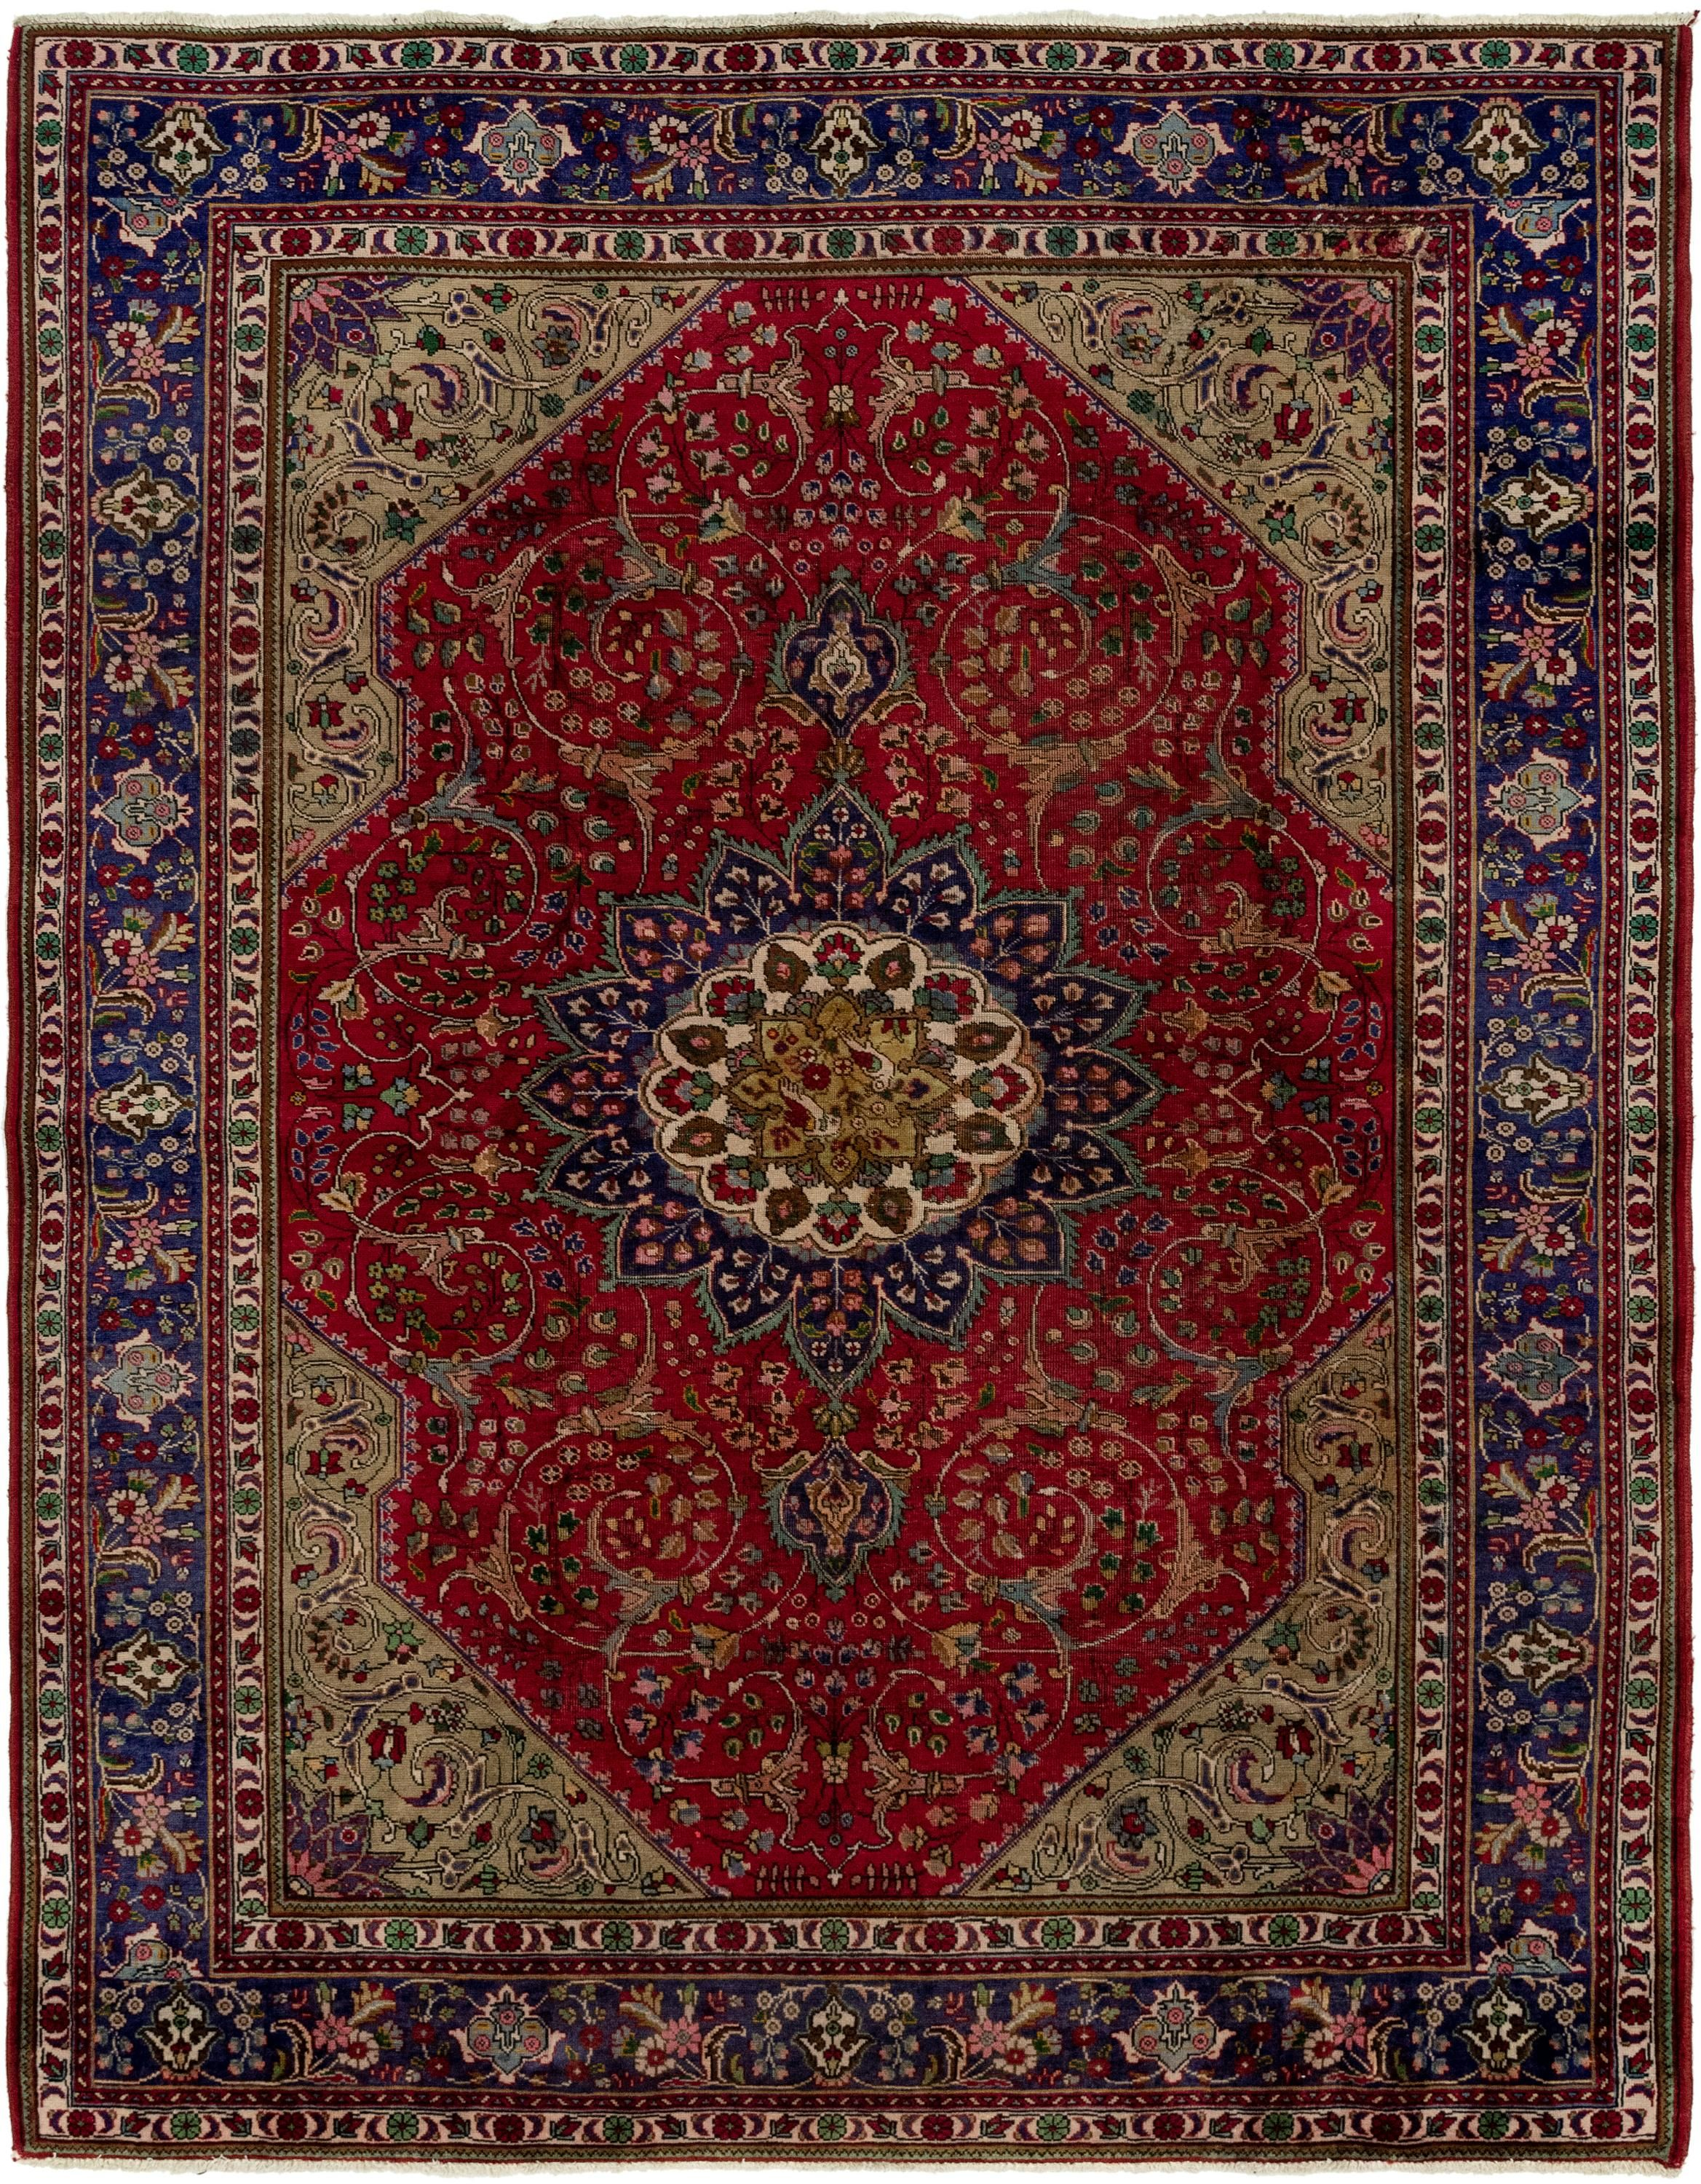 Red 8 4 X 10 10 Tabriz Persian Rug Affiliate Red Tabriz Rug Persian Sponsored Persian Rug Farmhouse Style House Rugs